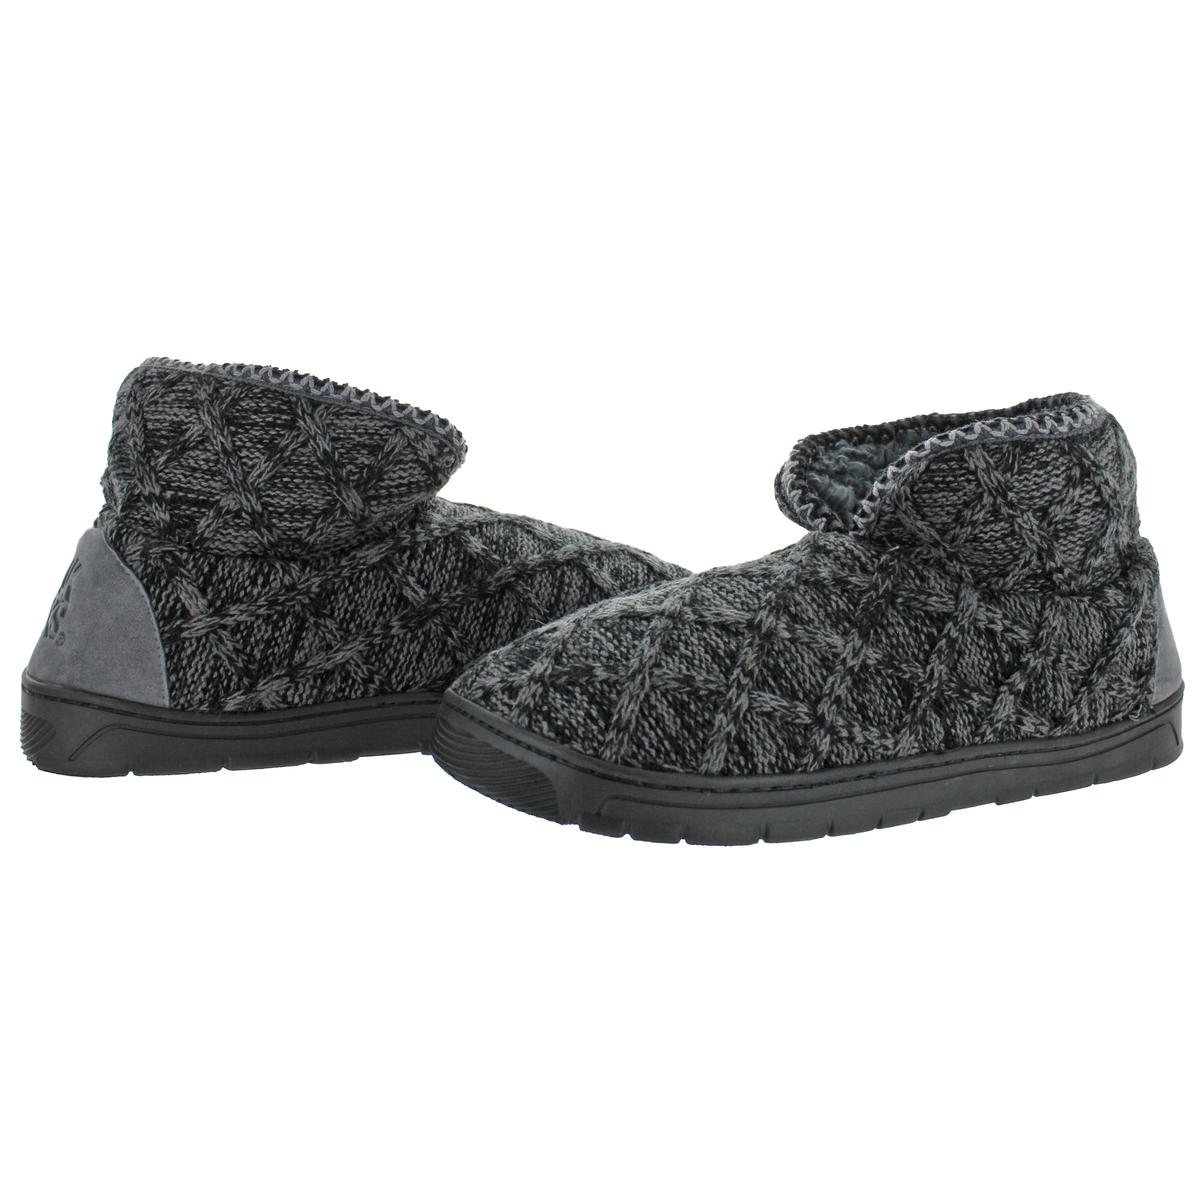 Mukluks-Men-039-s-Mark-Sweater-Knit-Furpa-Ankle-Bootie-House-Slippers thumbnail 3